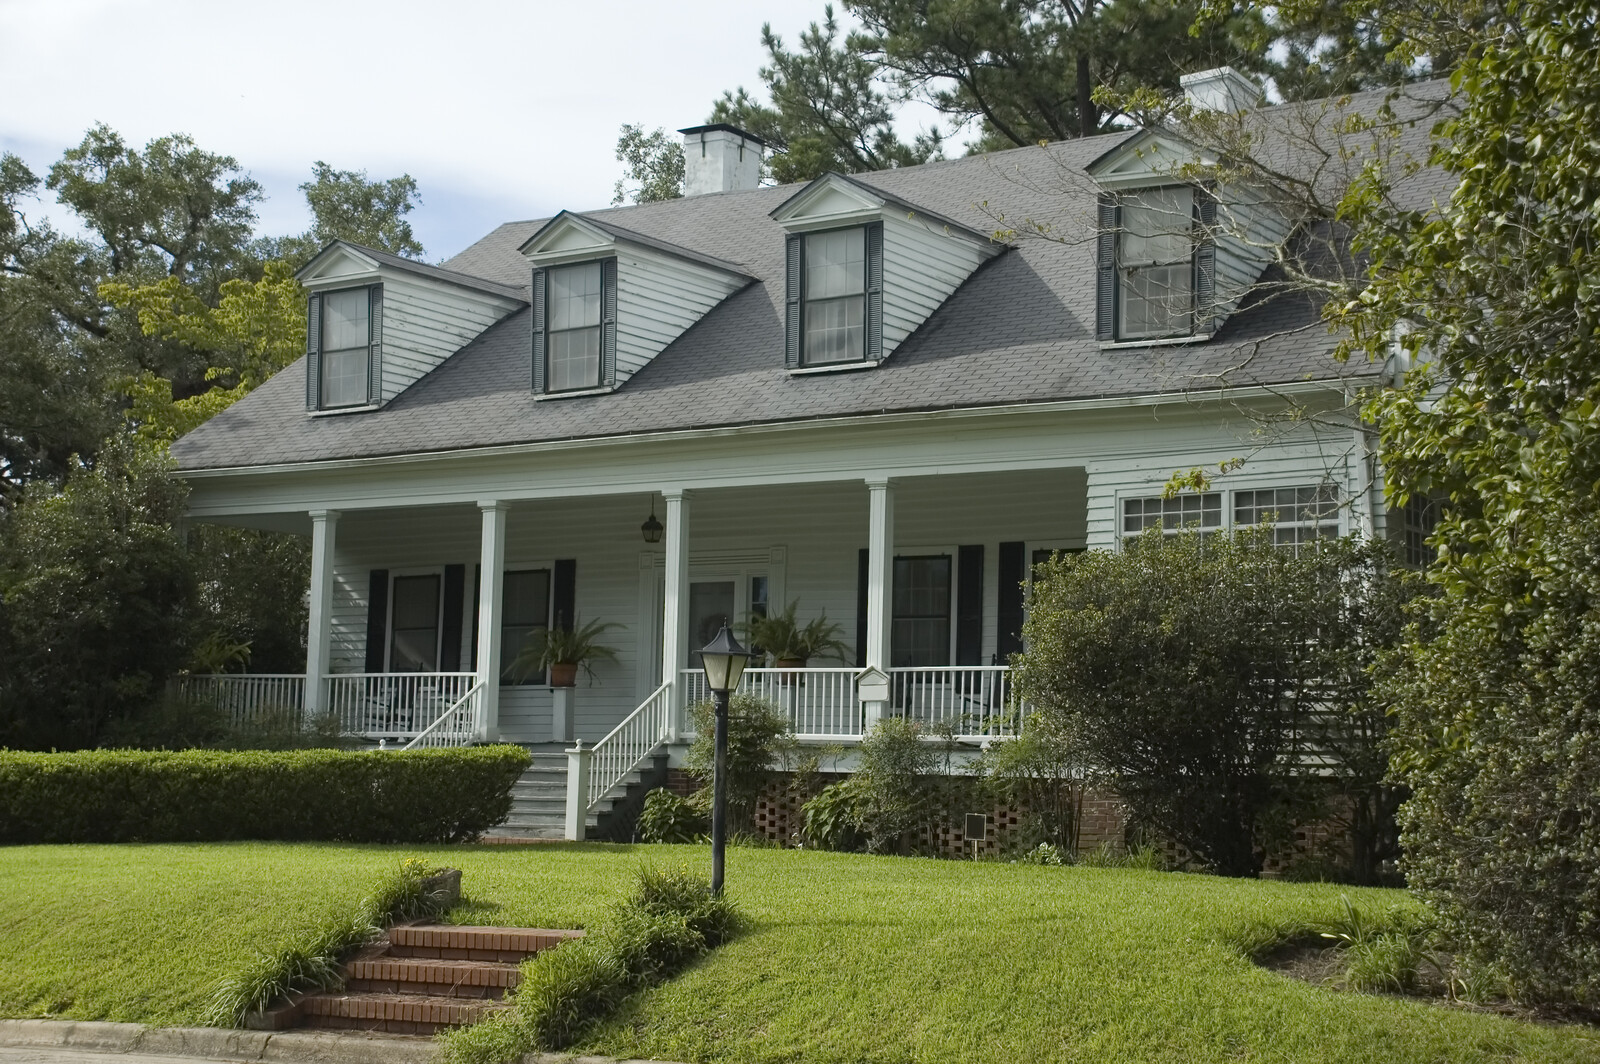 white home with gray shutters and green grass with trees and shrubs lining the yard